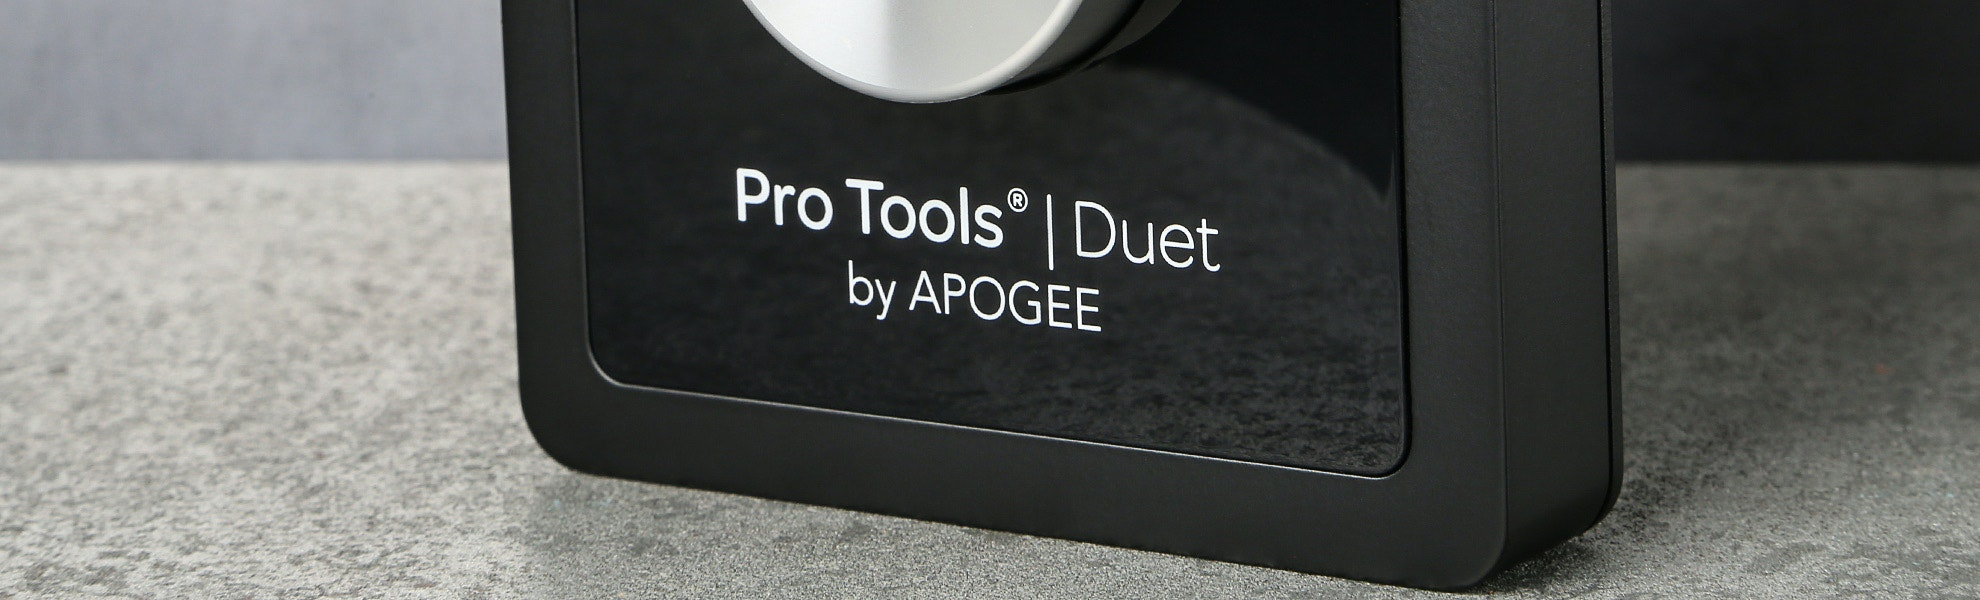 Avid Pro Tools Duet by Apogee